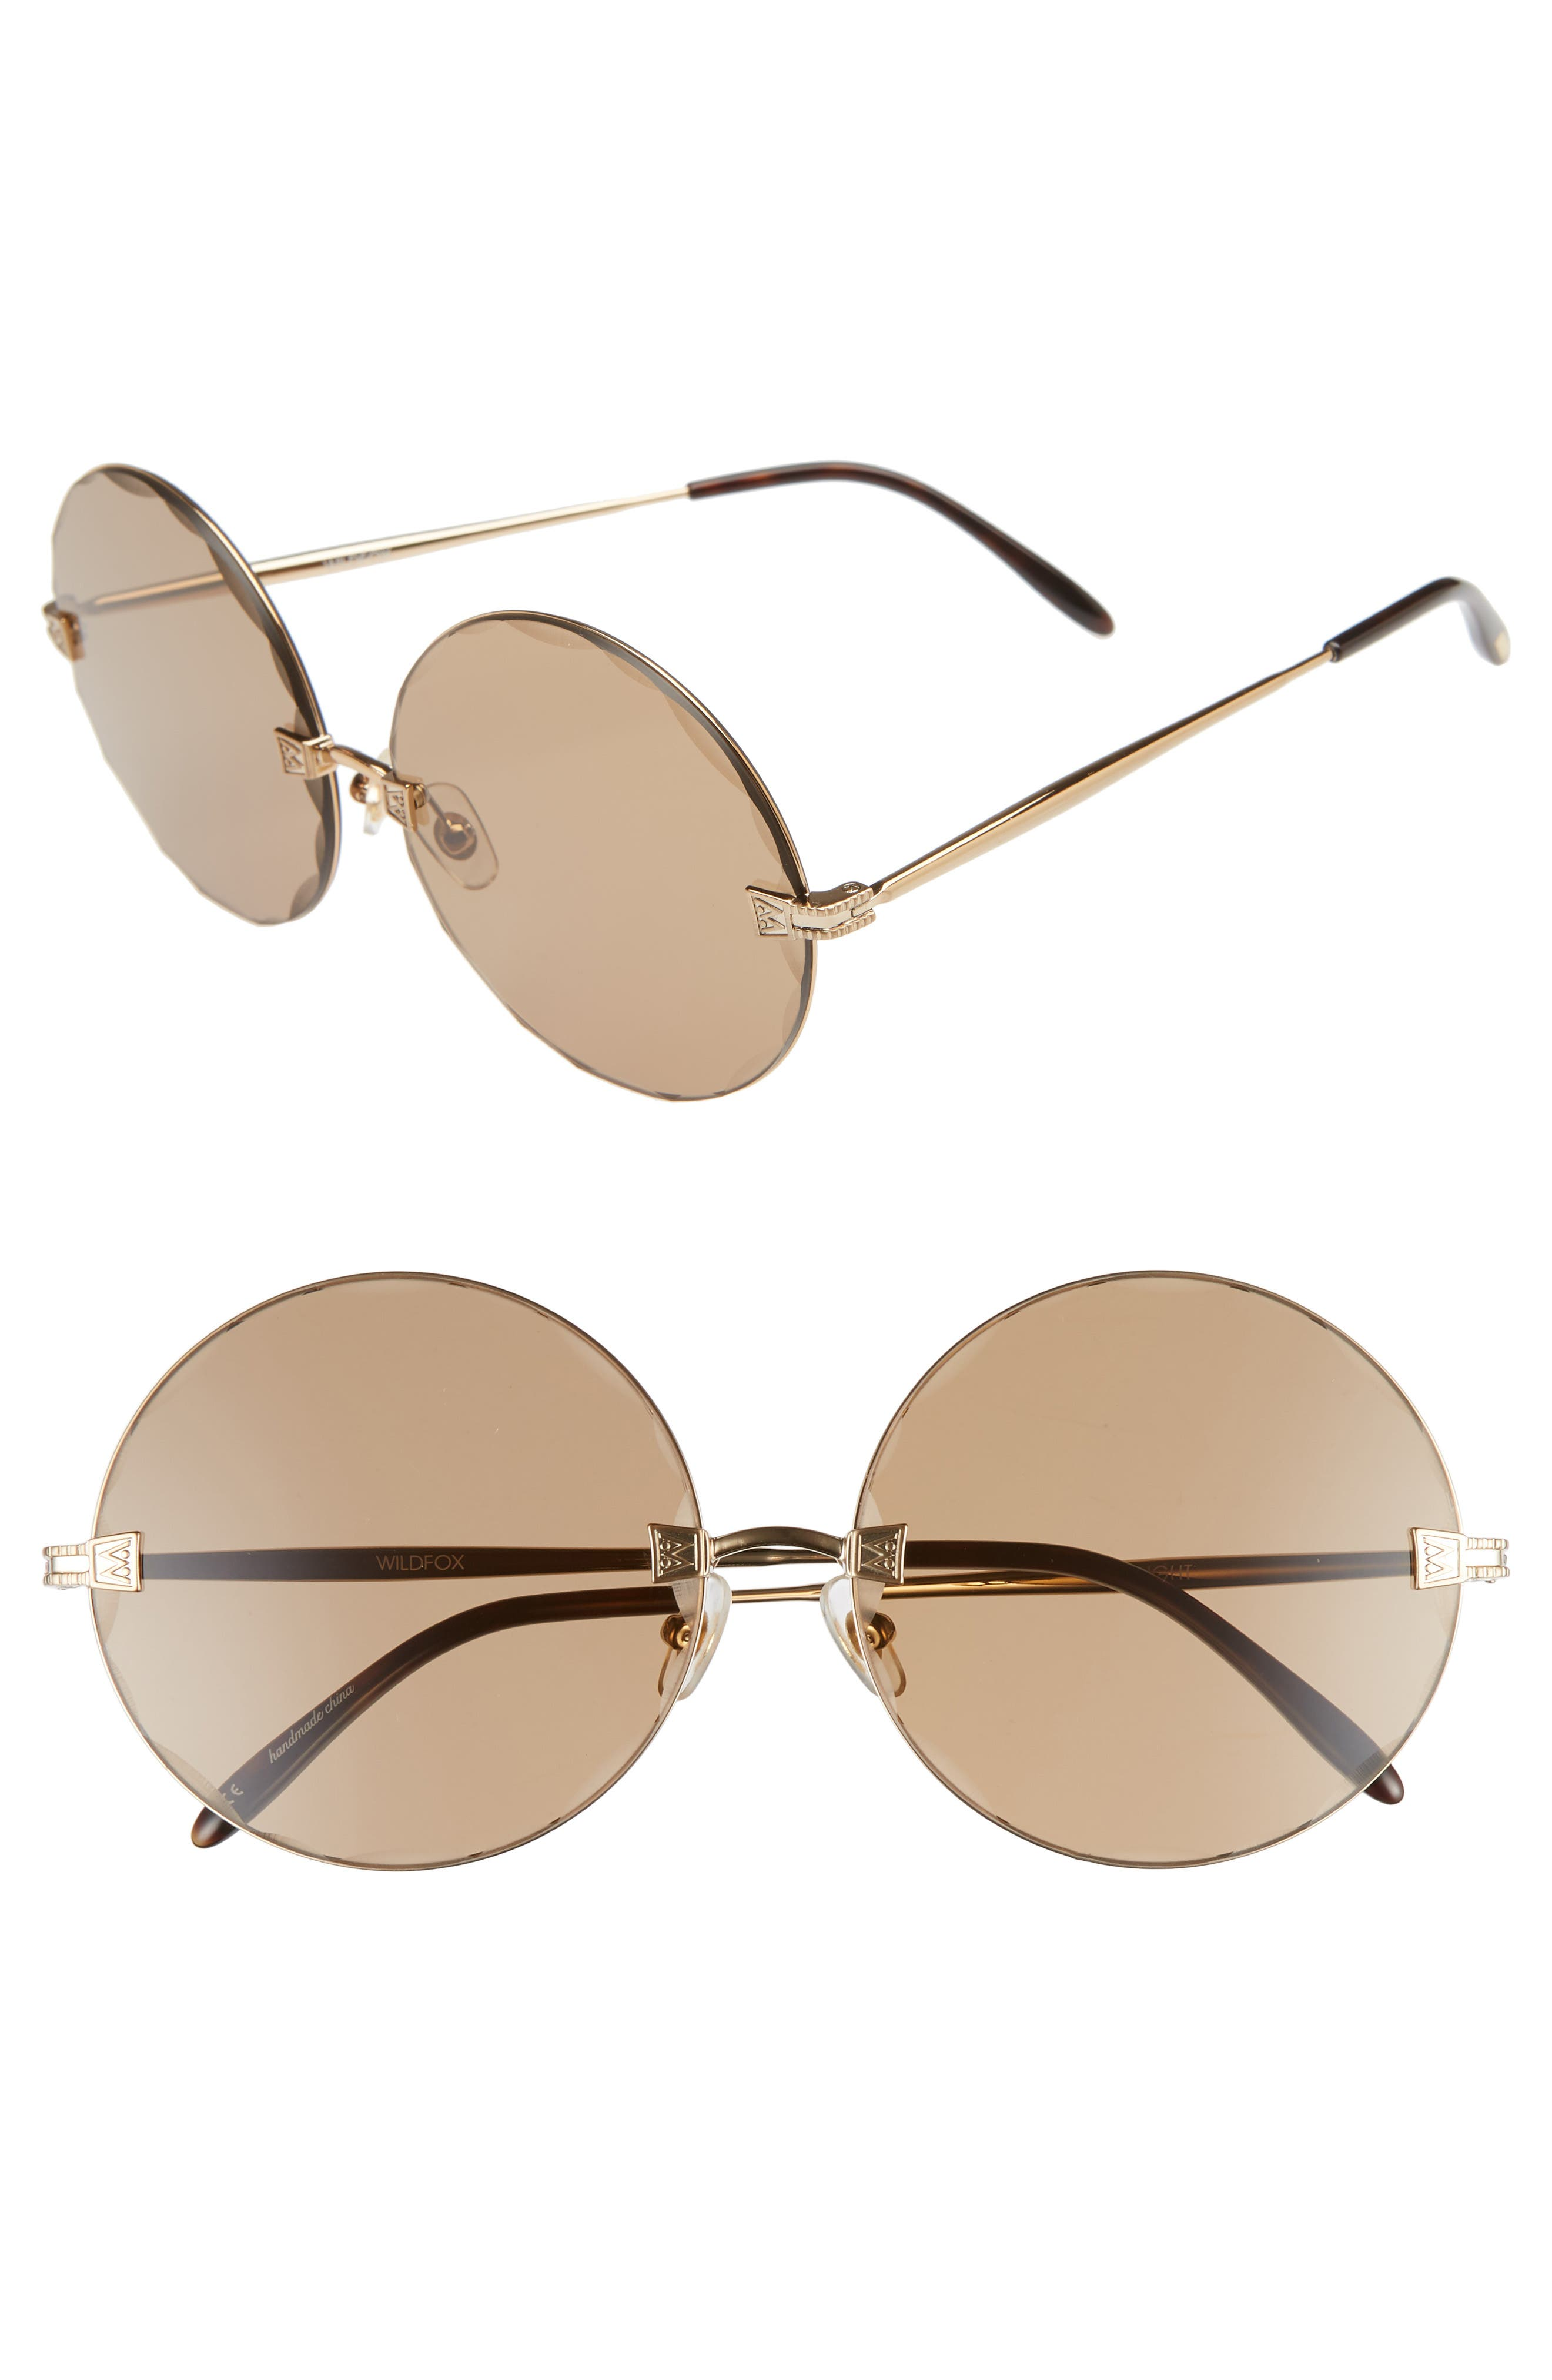 Starlight 62mm Oversize Round Sunglasses,                             Main thumbnail 1, color,                             ANTIQUE GOLD/ BROWN SOLID